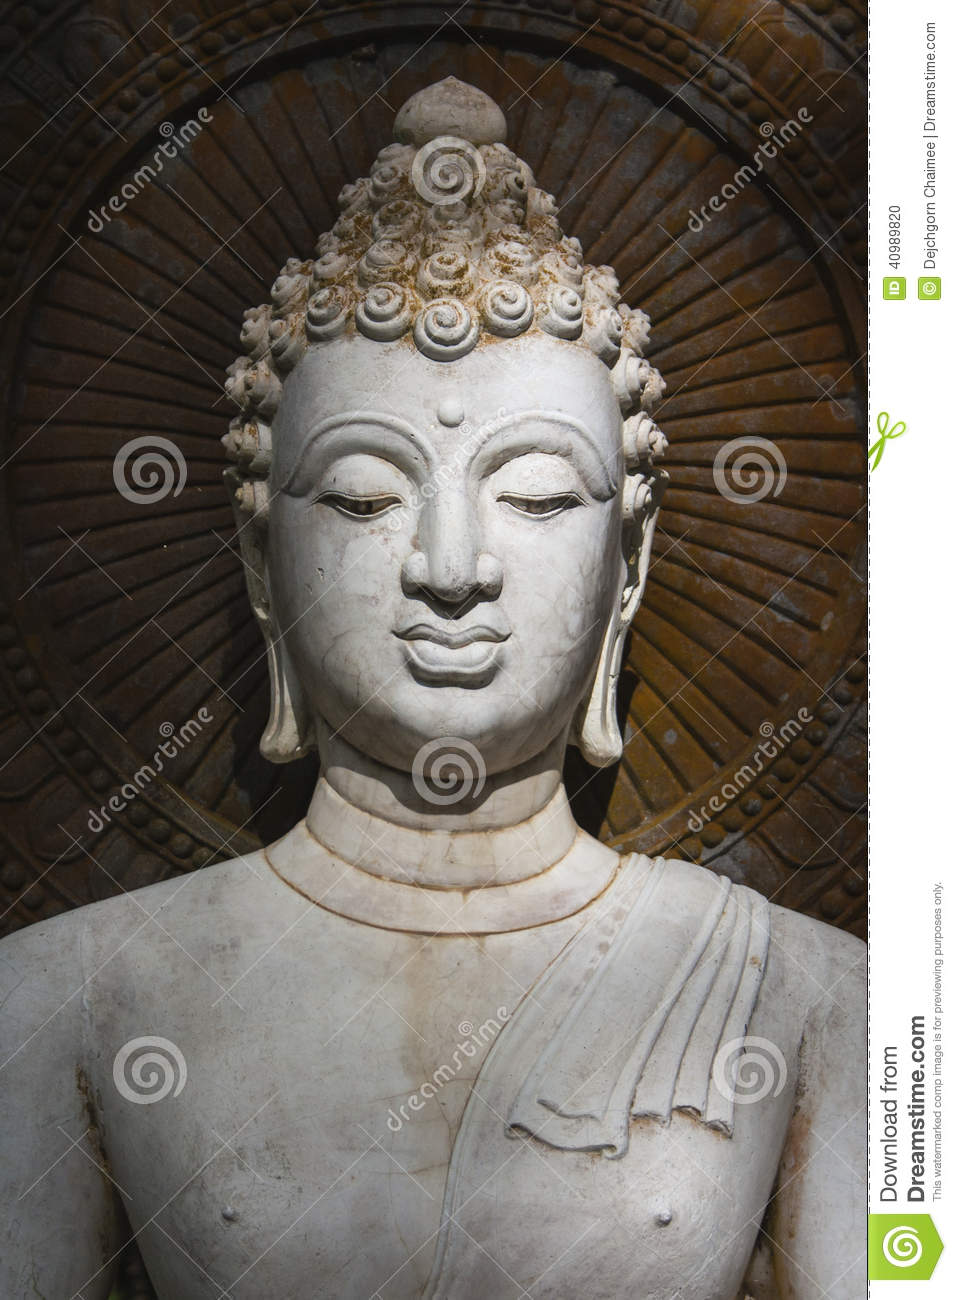 buddha face of budda statue stock photo image 40989820. Black Bedroom Furniture Sets. Home Design Ideas